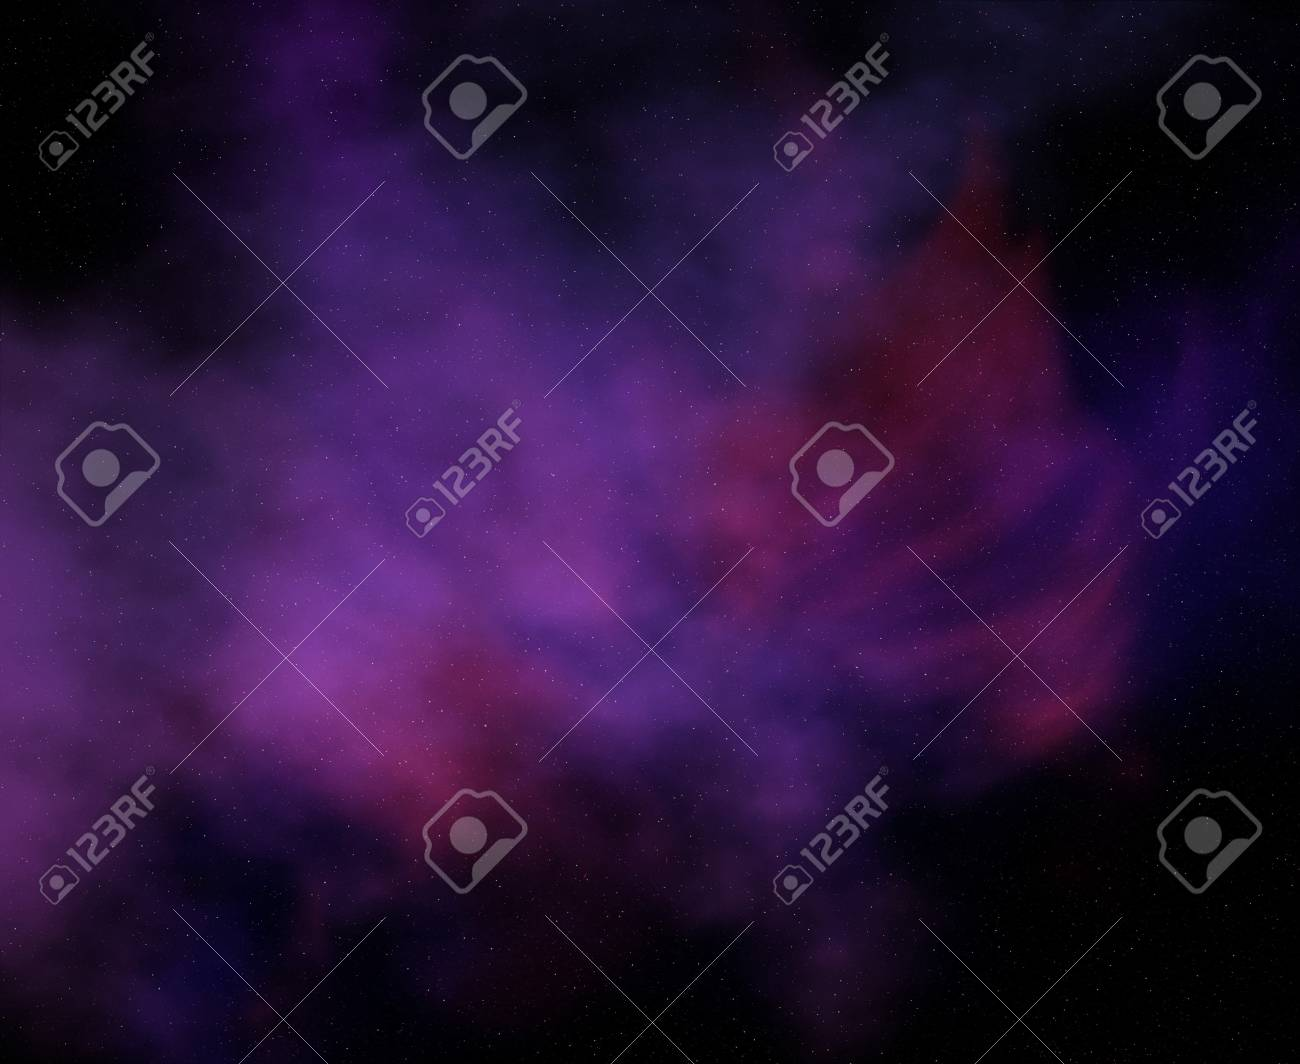 cosmic infinity with nebulae and stars - 95516012